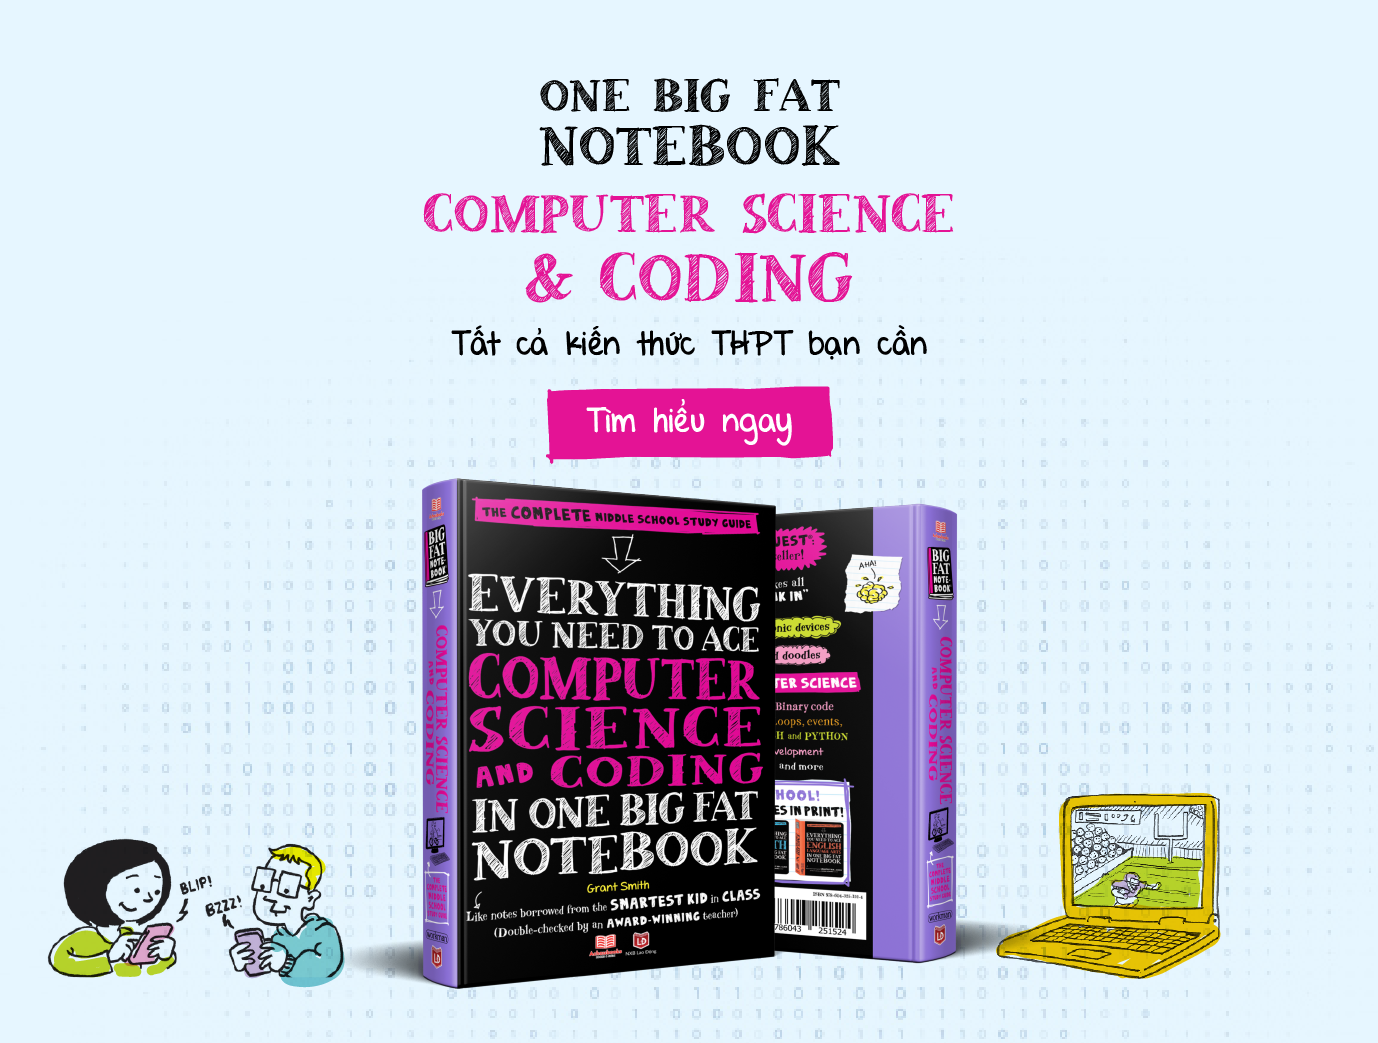 ONE BIG FAT NOTEBOOK SCIENCE COMPUTER & CODING